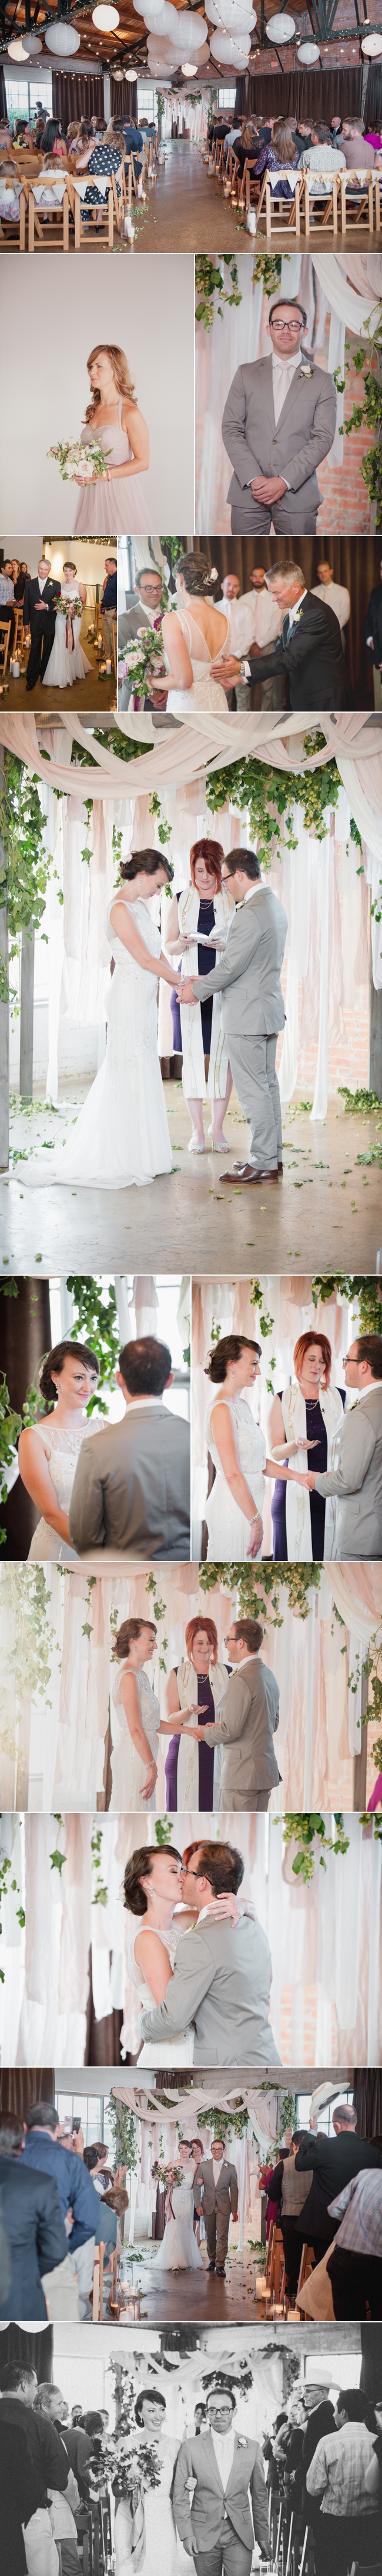 Hickory Street Annex Weddings